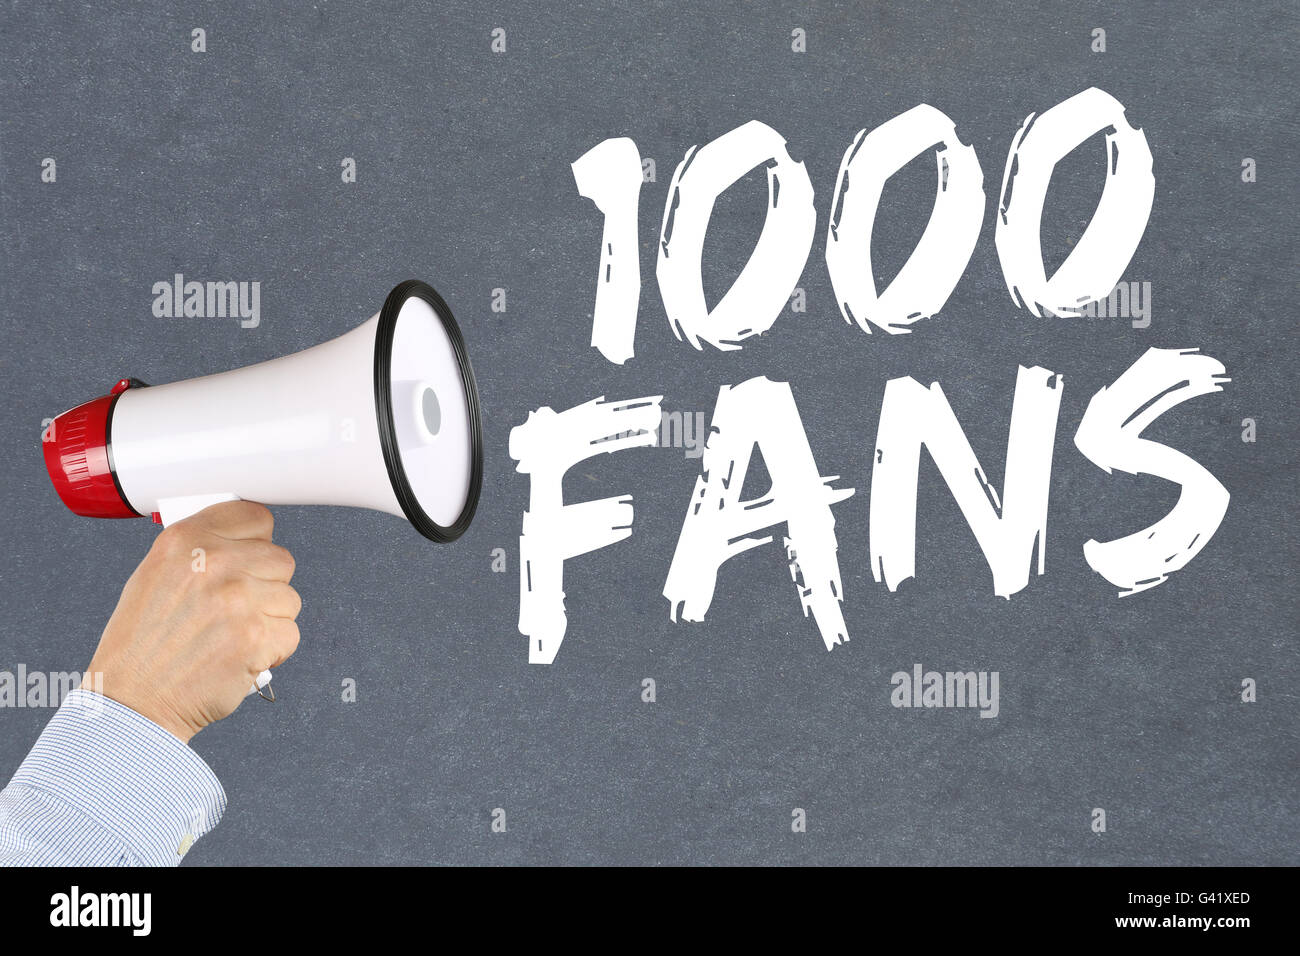 1000 fans likes social networking media hand with megaphone - Stock Image